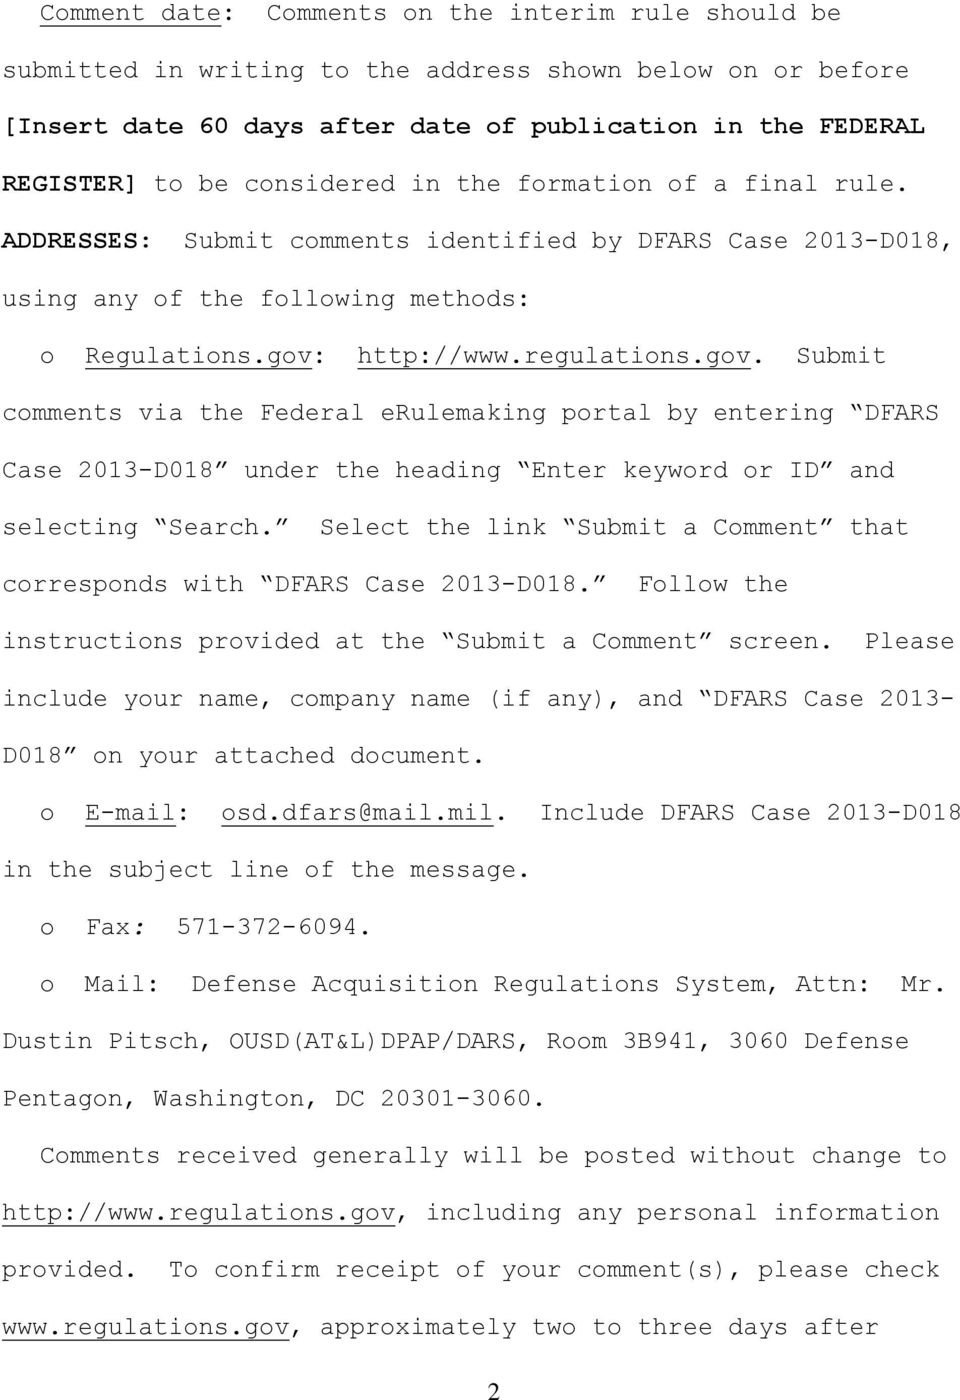 http://www.regulations.gov. Submit comments via the Federal erulemaking portal by entering DFARS Case 2013-D018 under the heading Enter keyword or ID and selecting Search.